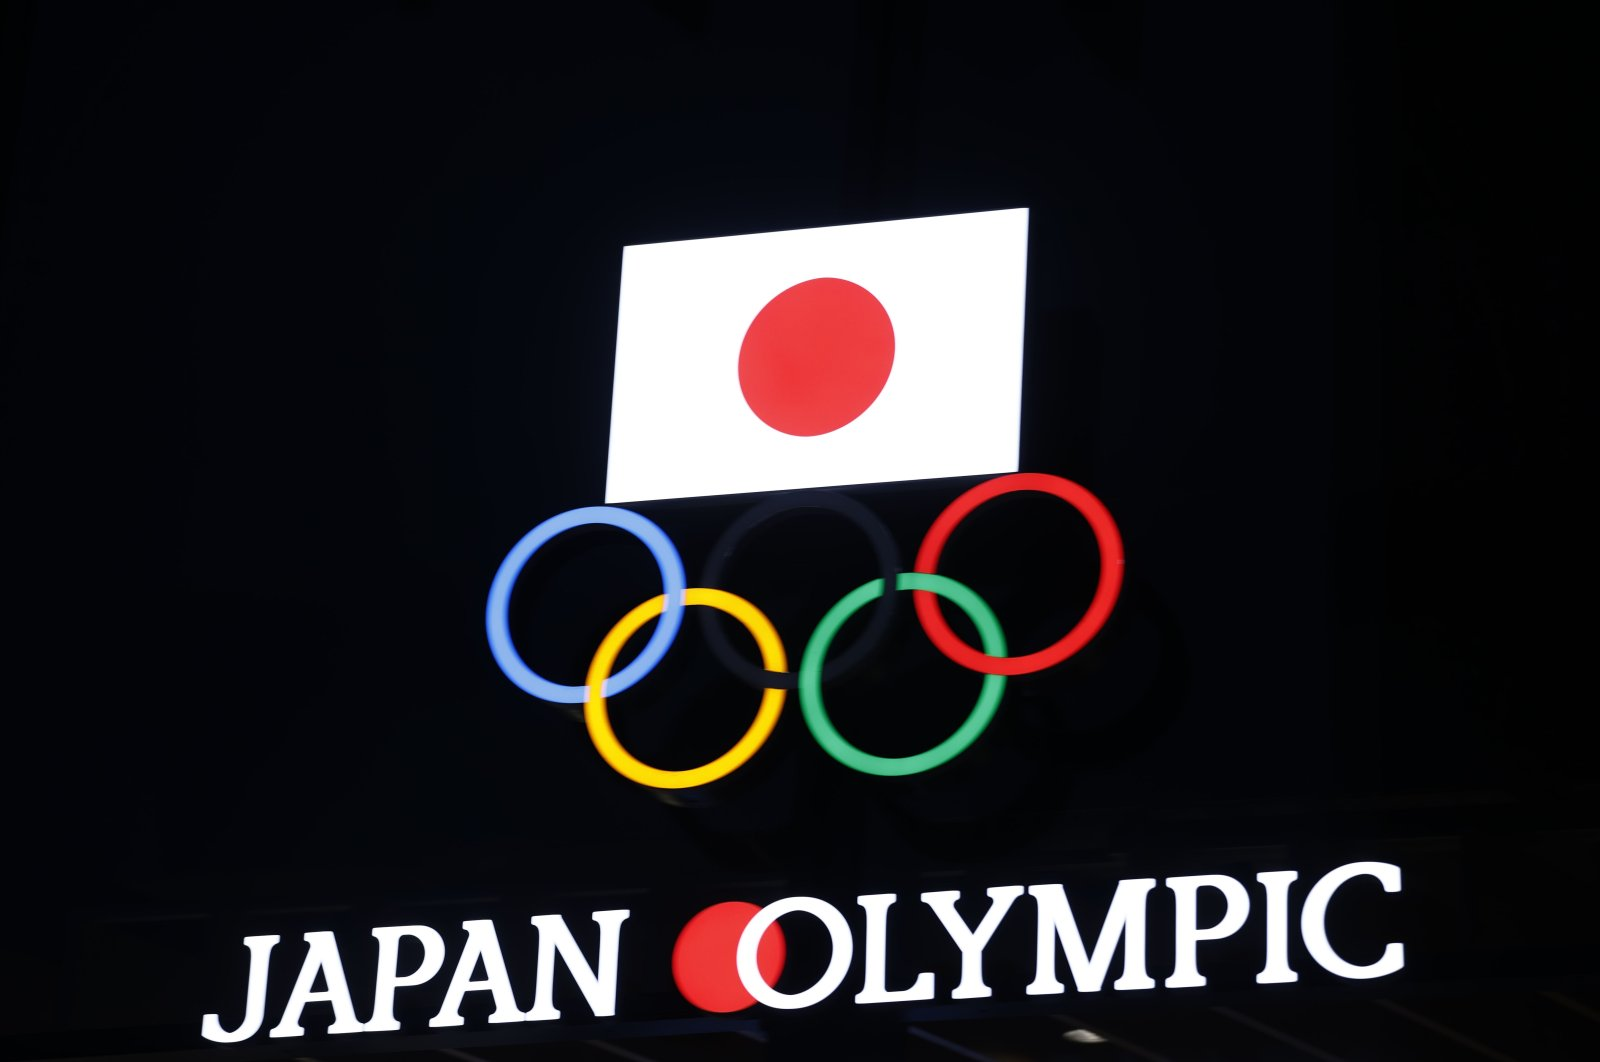 The Olympic rings and a Japanese flag on display at the Japan Olympic Museum building in Tokyo, Japan, Jan. 8, 2021. (AFP Photo)